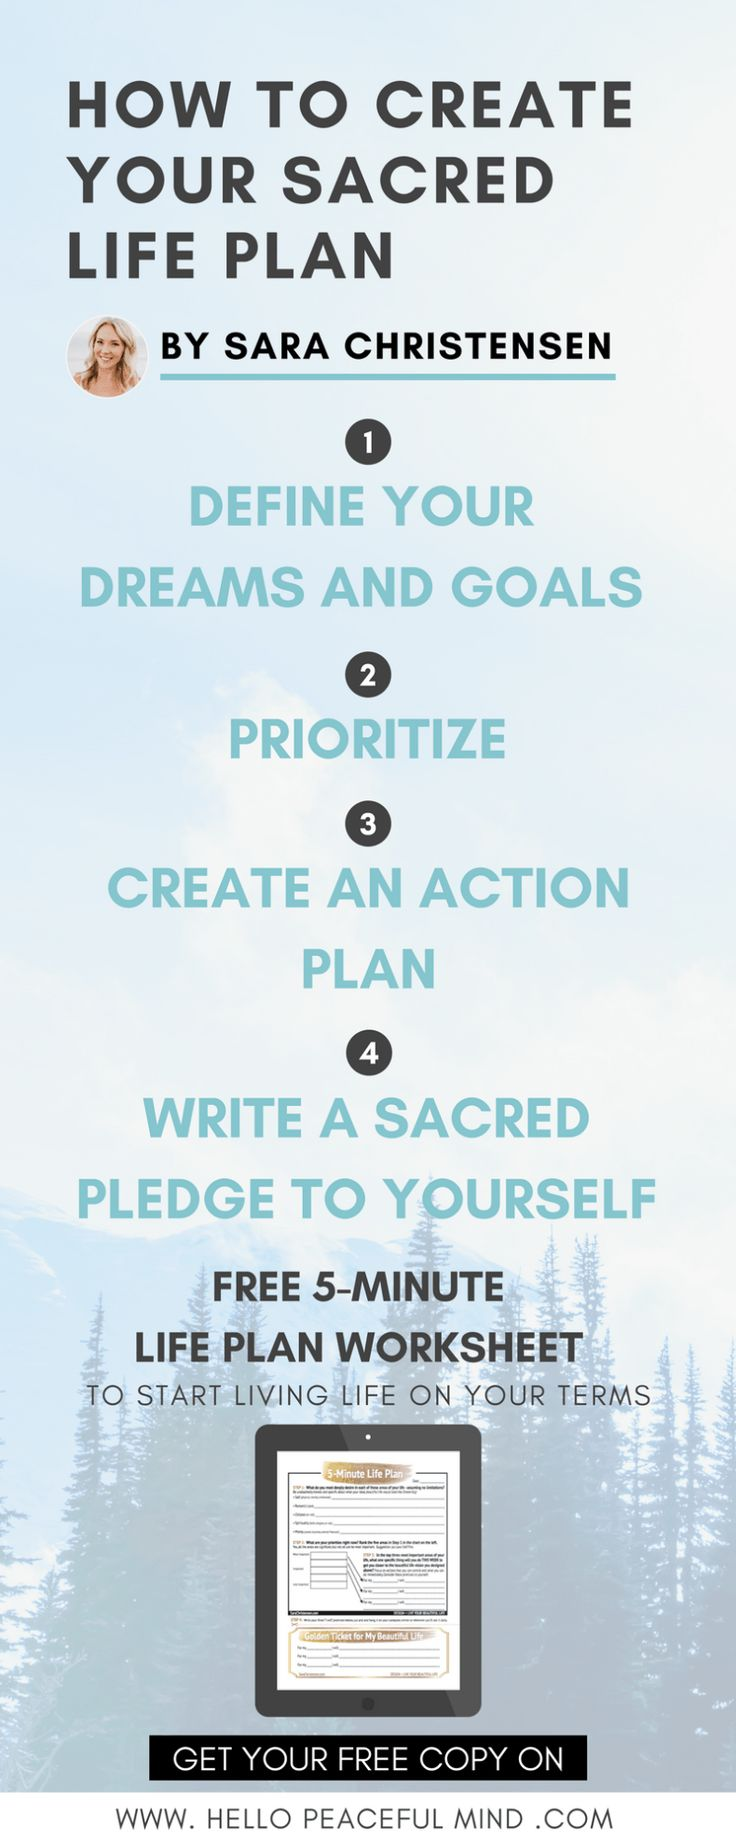 Sara Christensen will show you how to create your very own sacred life plan. You will discover how to prioritize, make a plan and commit to your dreams. Go to www.hellopeacefulmind.com to read the full article